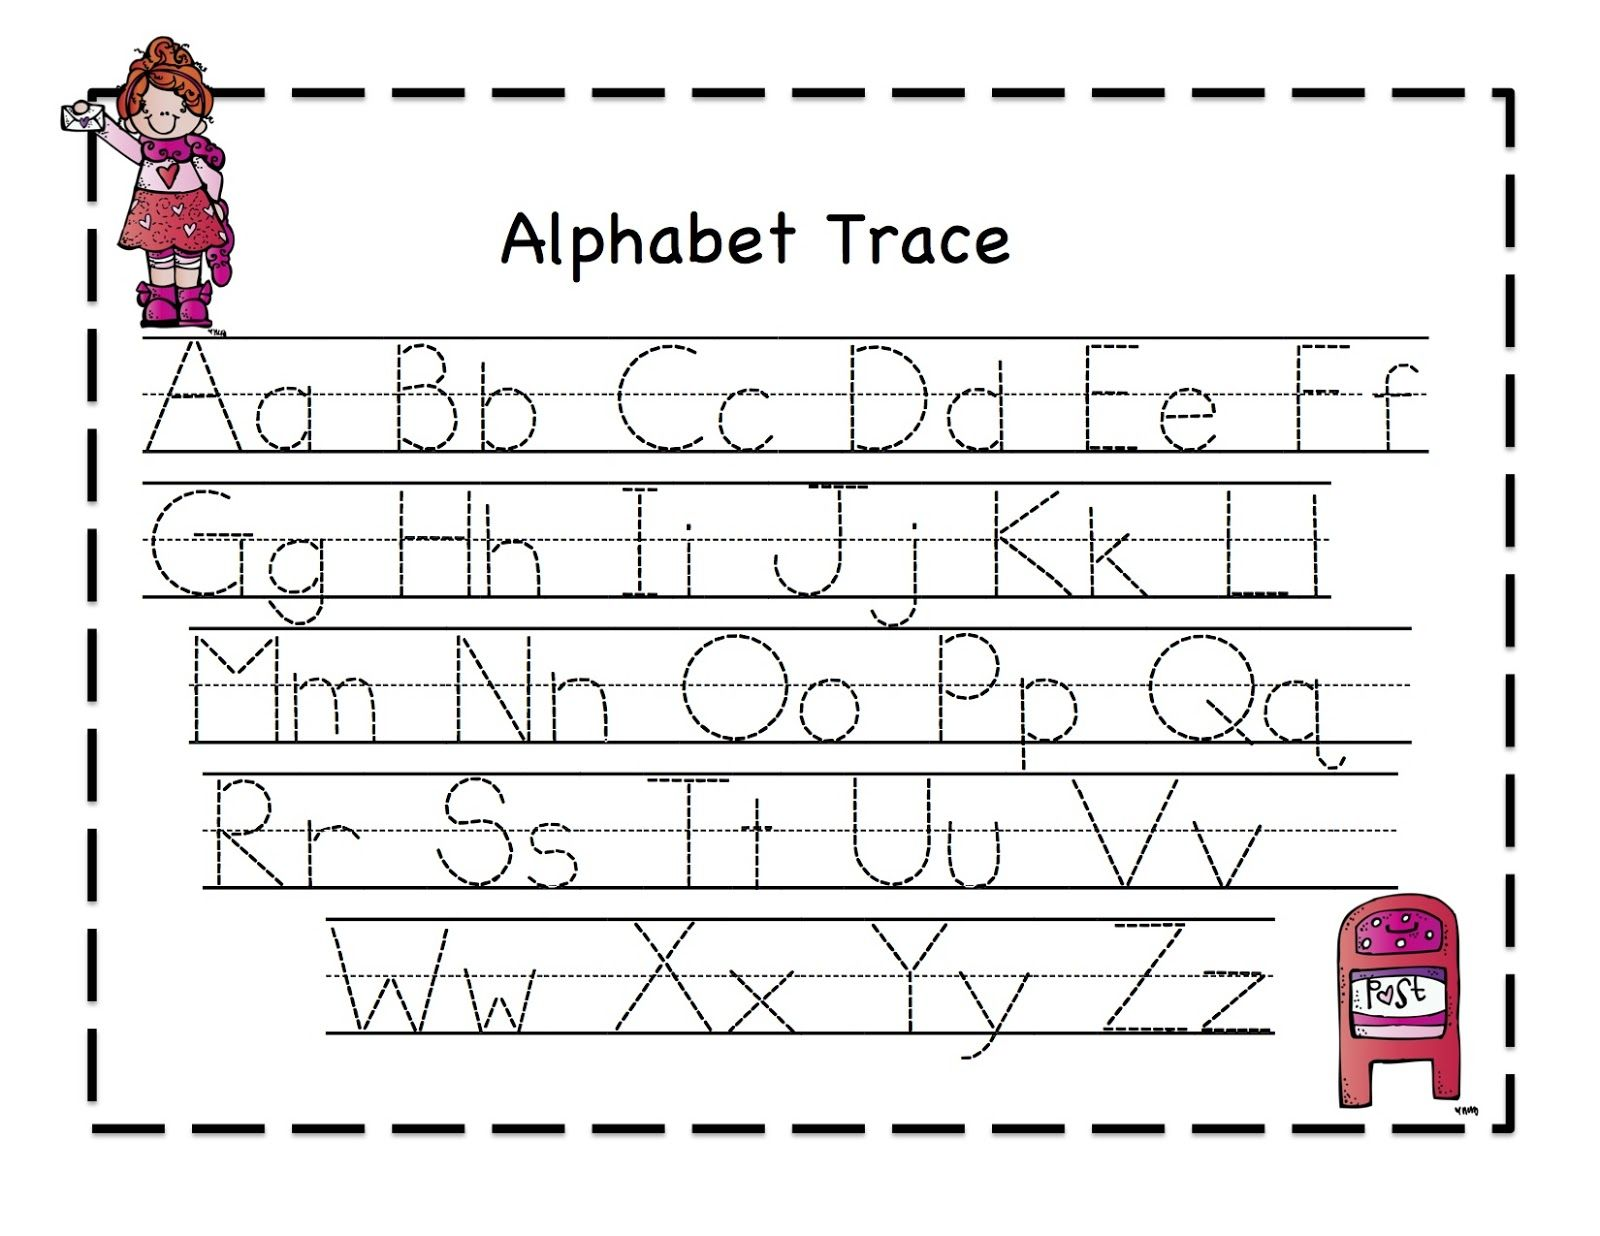 Worksheets Abc Worksheets For Pre-k abc tracing sheets for preschool kids kiddo shelter alphabet and shelter